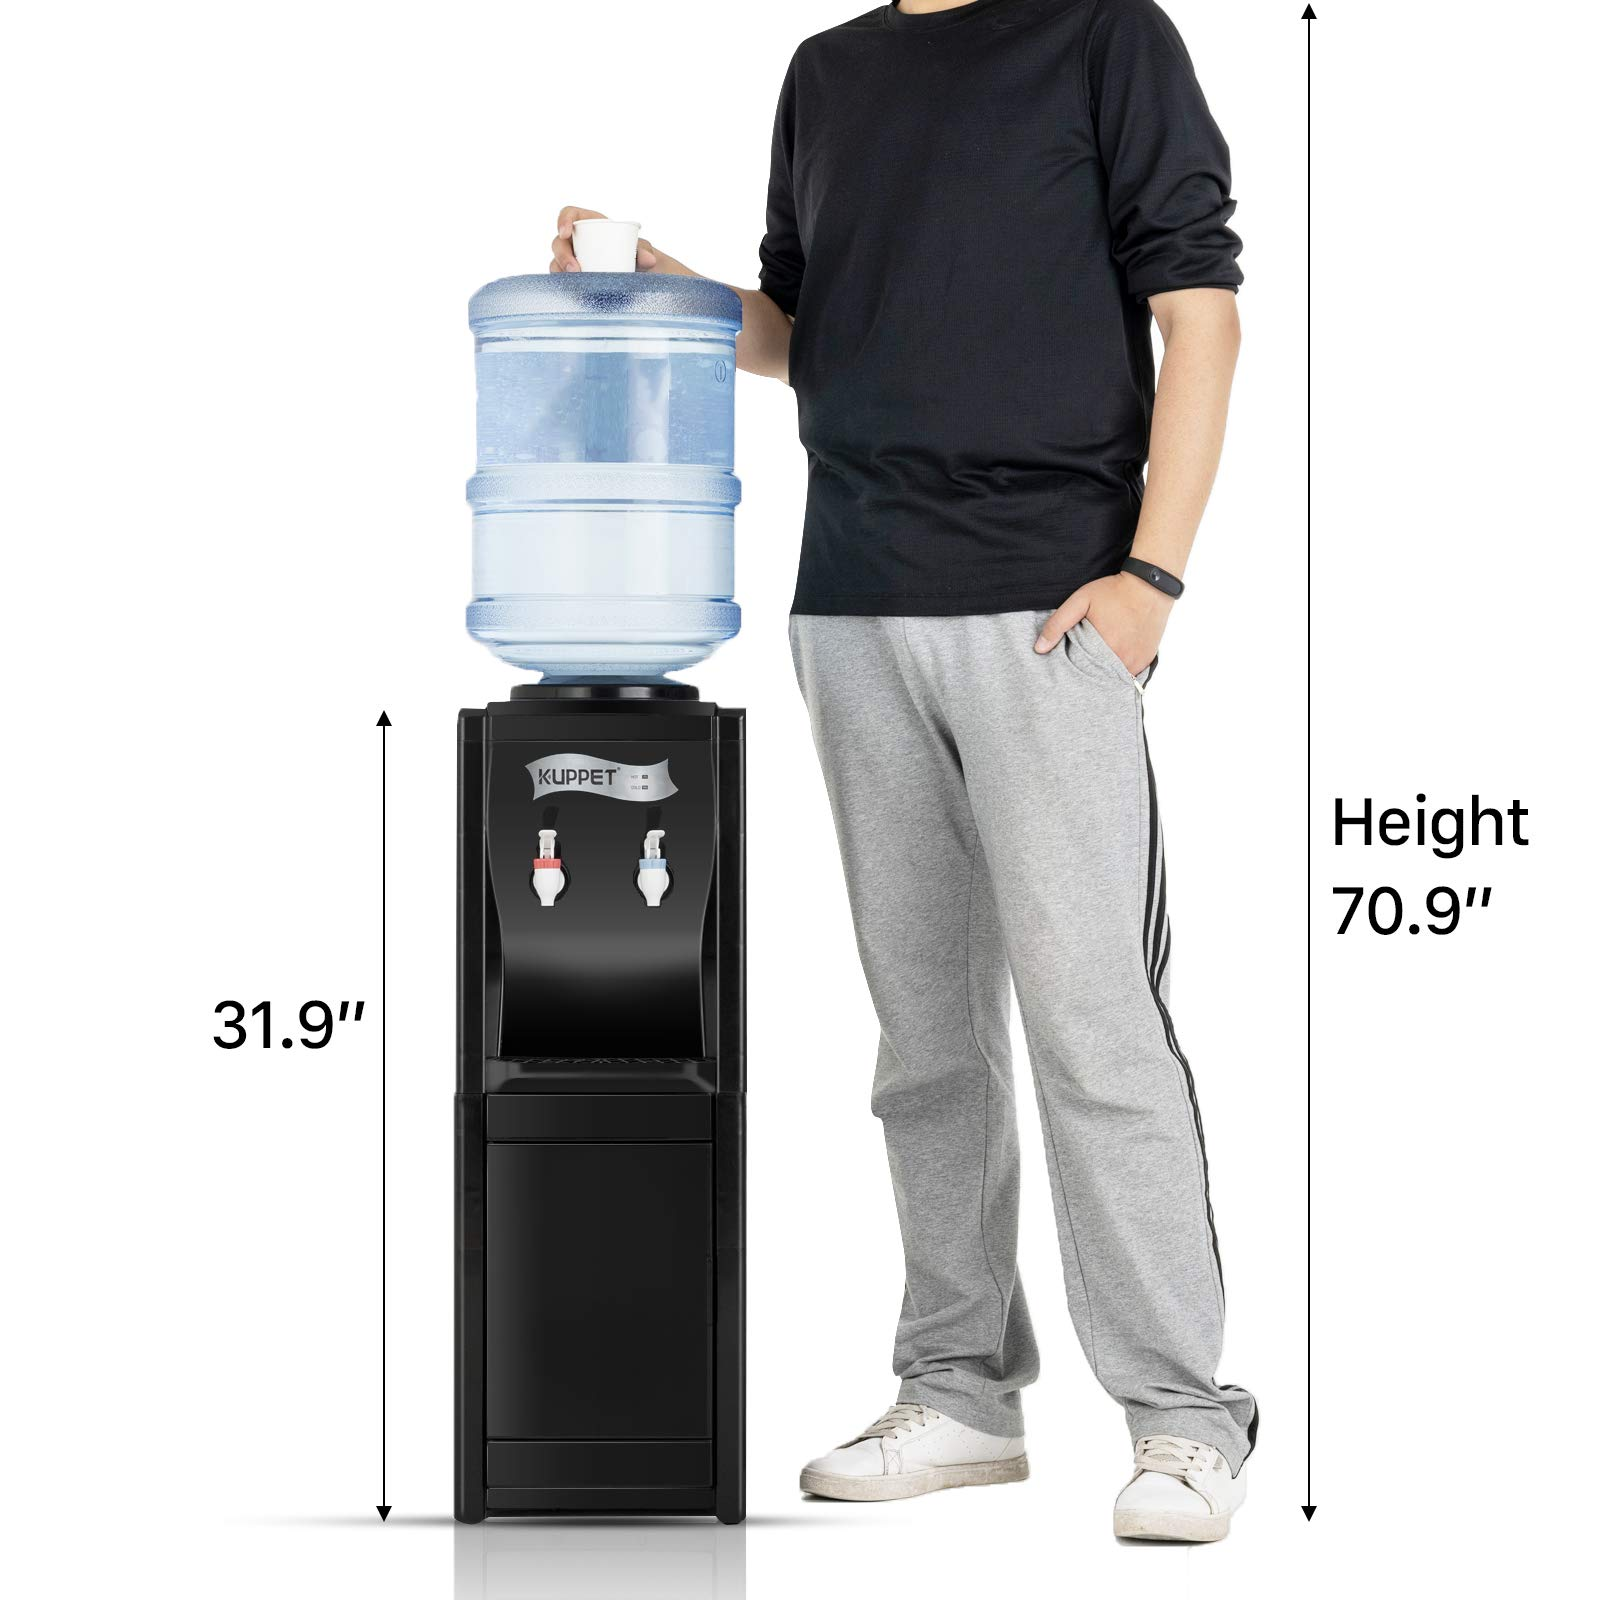 KUPPET Water Cooler Dispenser-Top Loading Freestanding Water Dispenser with Storage Cabinet, 5 Gallon, Two Temperature Settings-Hot(185℉-203℉), Normal Temperature(50℉-59℉), BLACK(32'', Black) by KUPPET (Image #7)